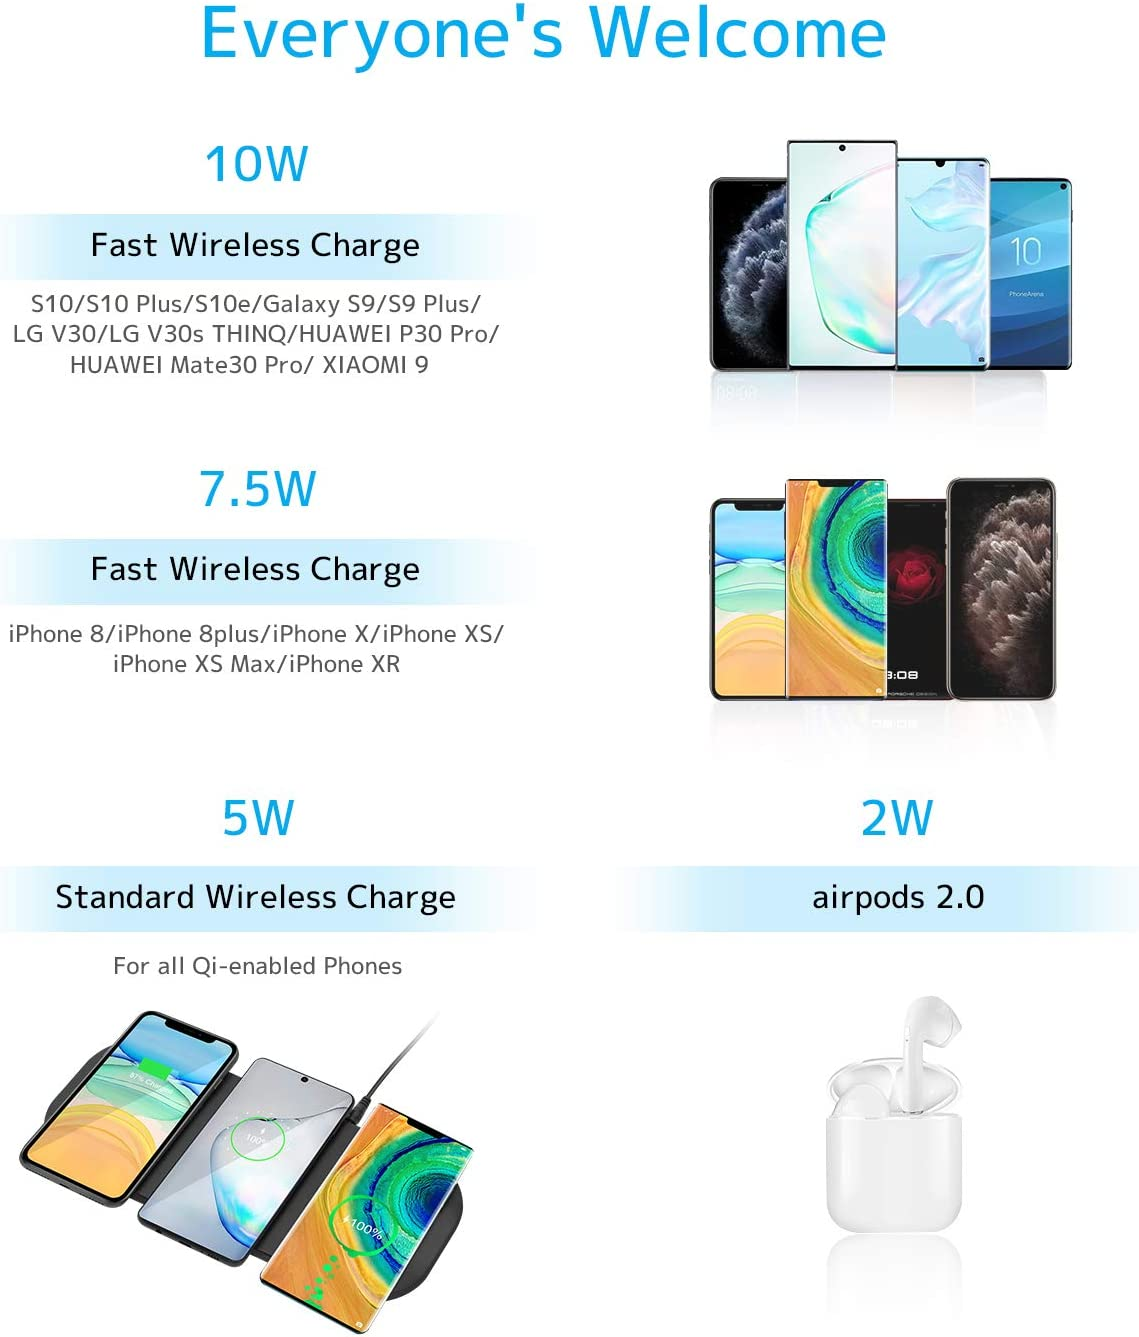 3x10W Wireless Charging Pad Kexm Qi-Certified Ultra-Slim Fast Triple Wireless Charger Station for Multiple 3 Devices /& New Airpods Leather W//AC Adapter for All Qi Enabled Phones Black